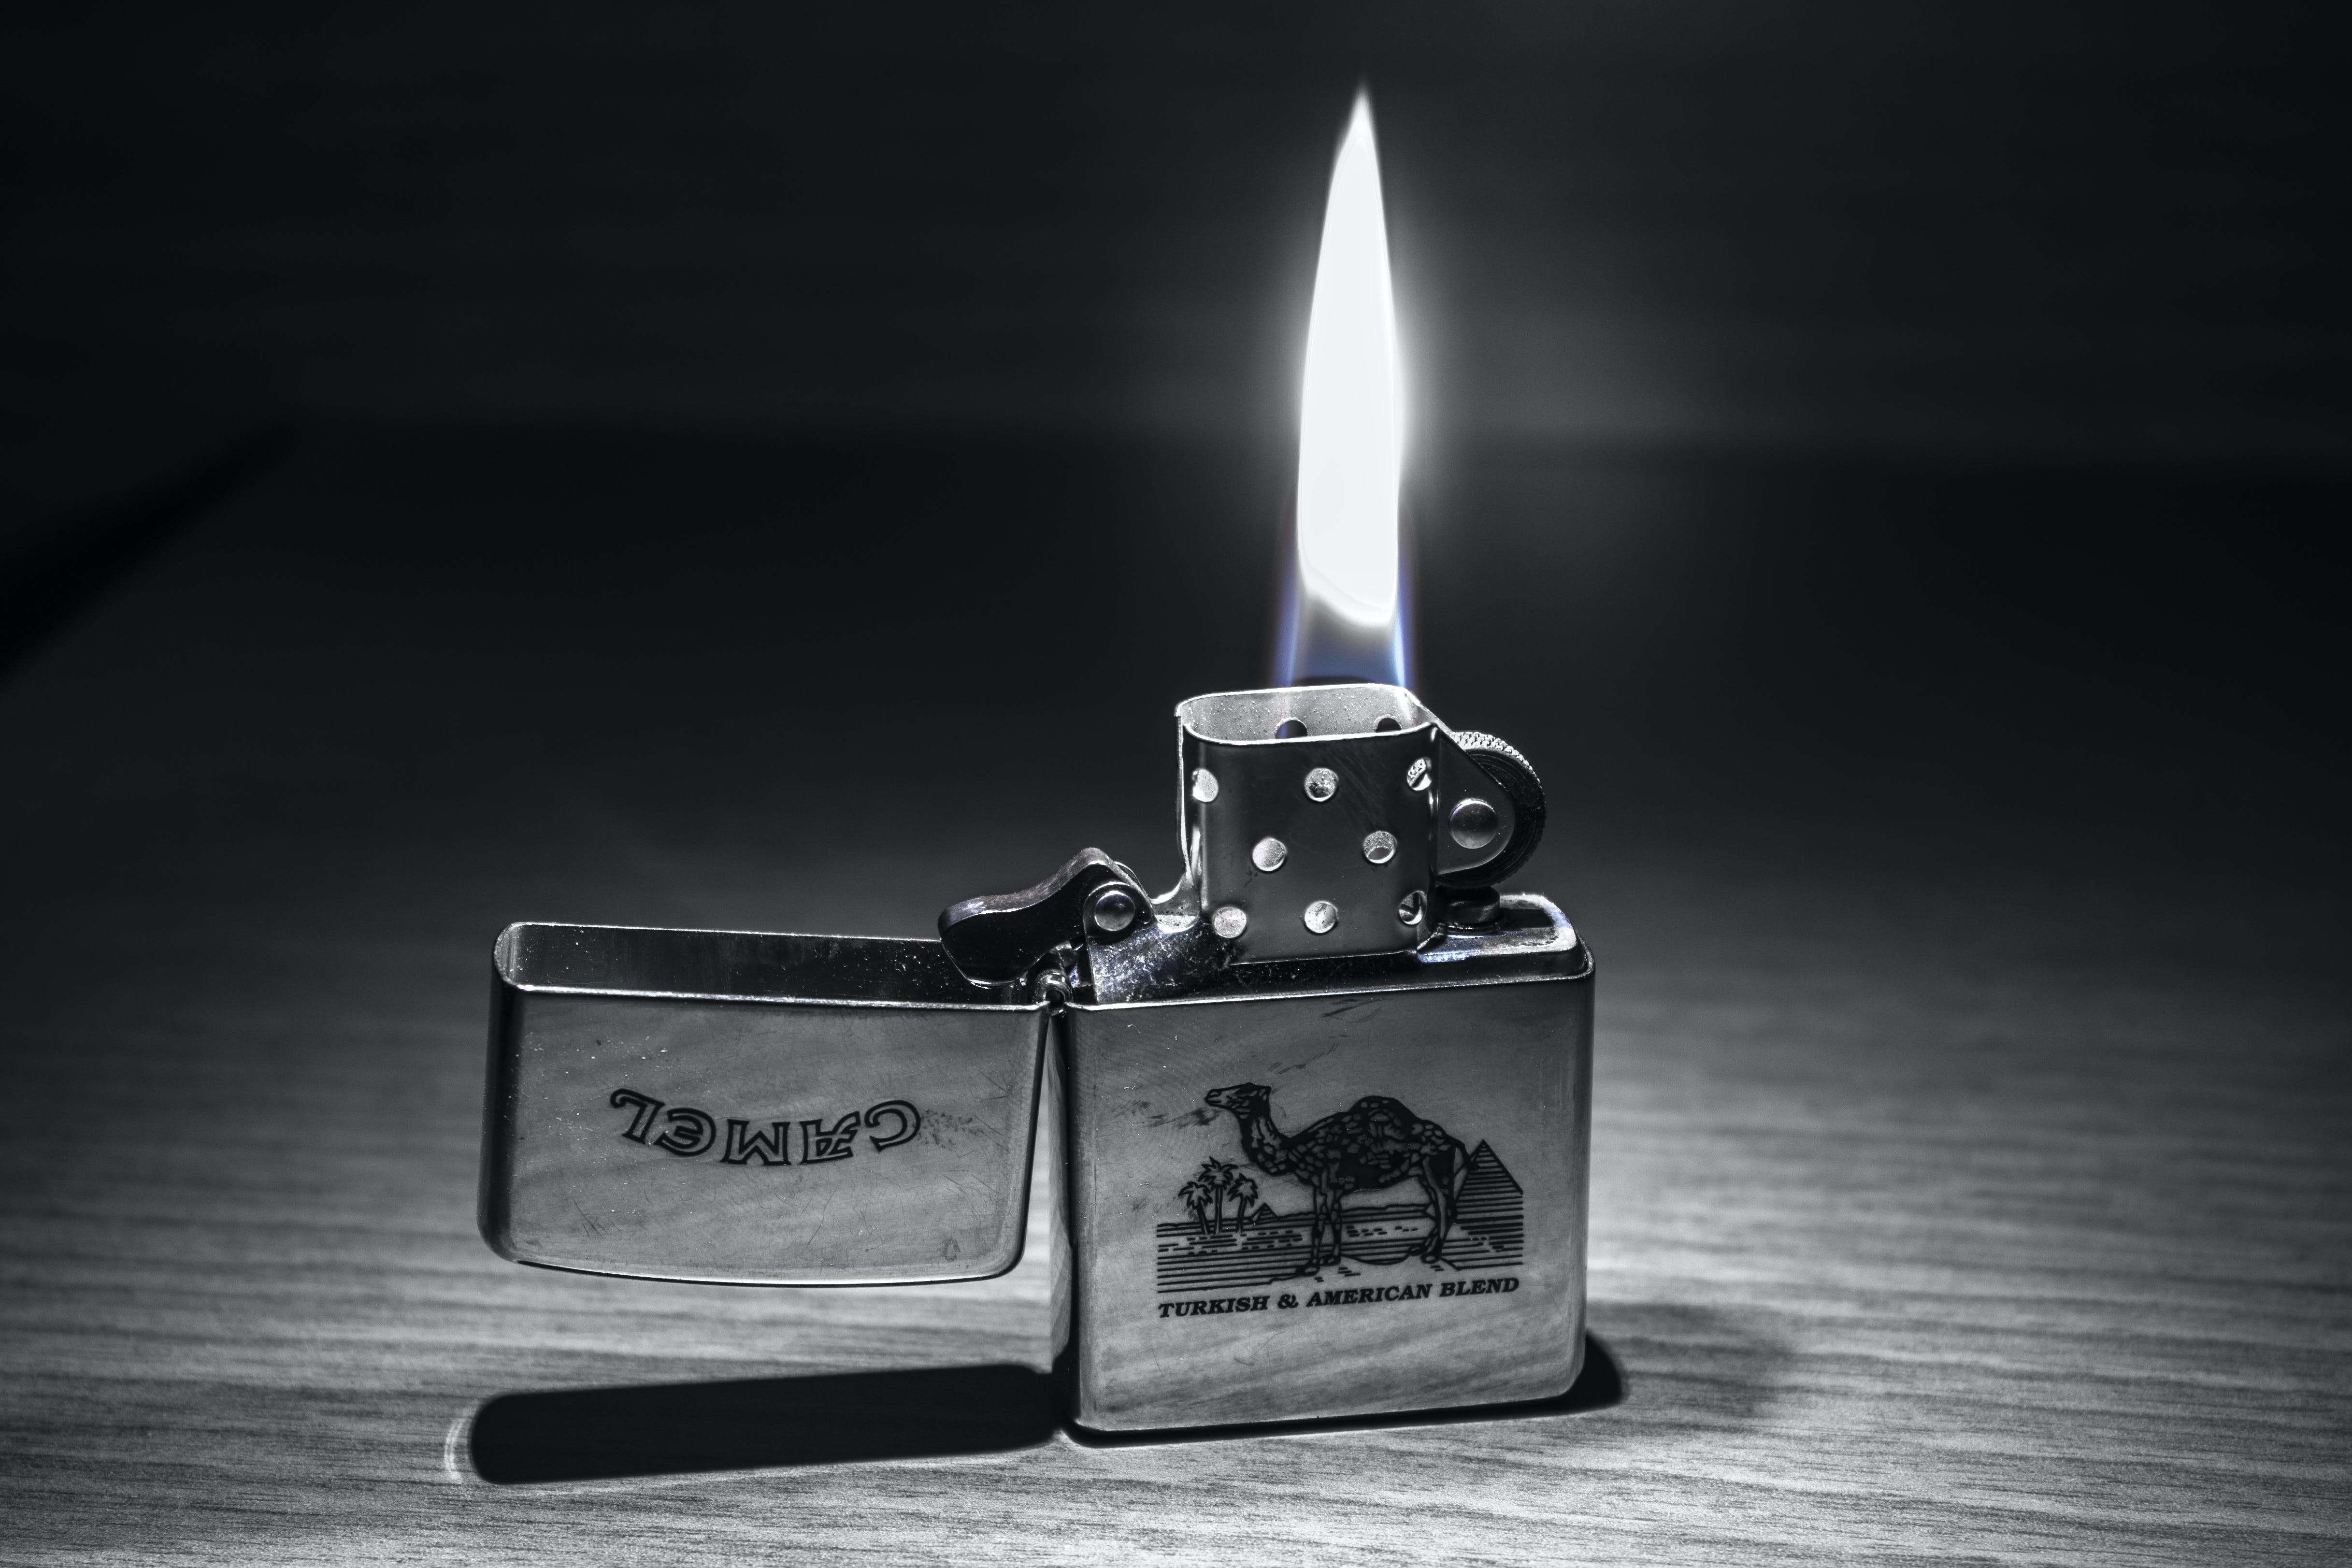 Grayscale Photography of Camel Flip Lighter